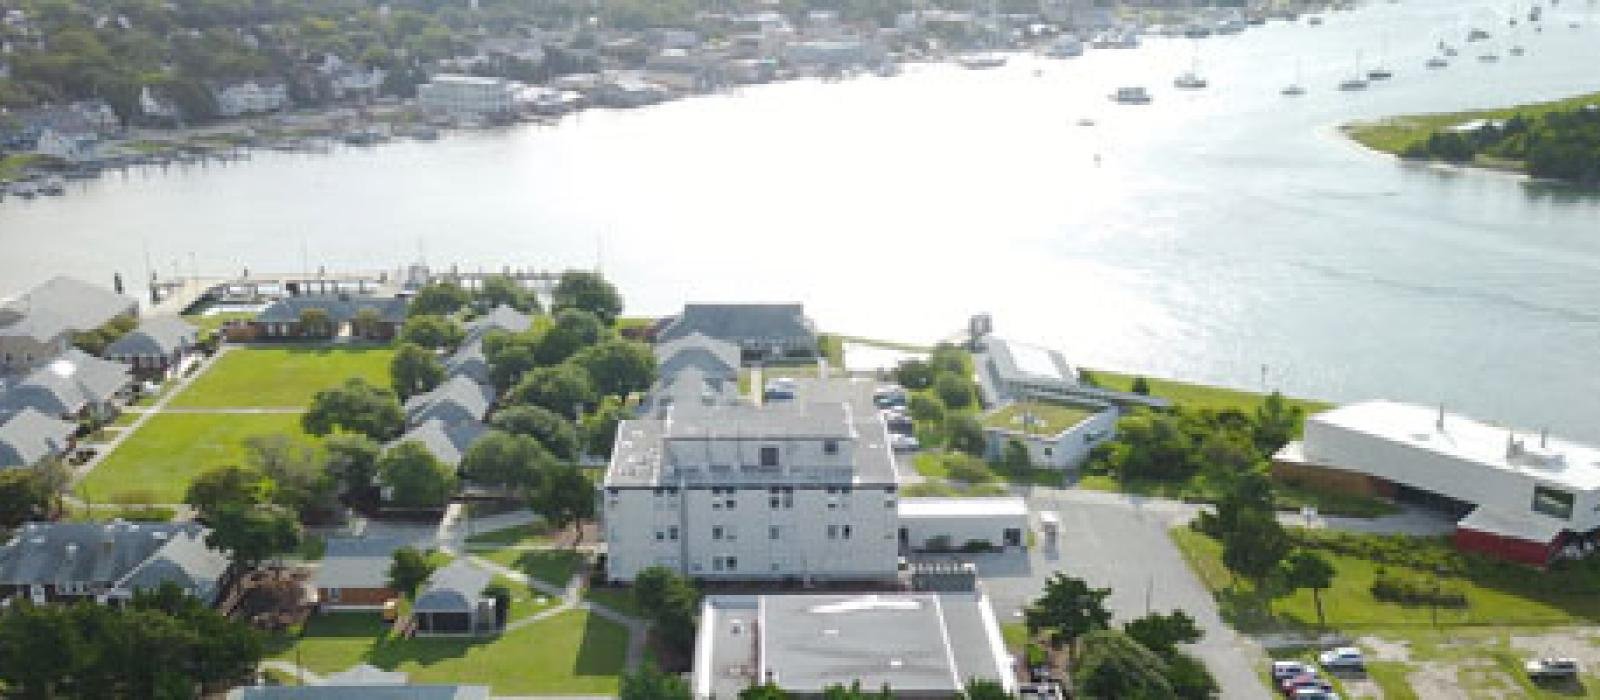 Aerial view of the Marine Lab campus